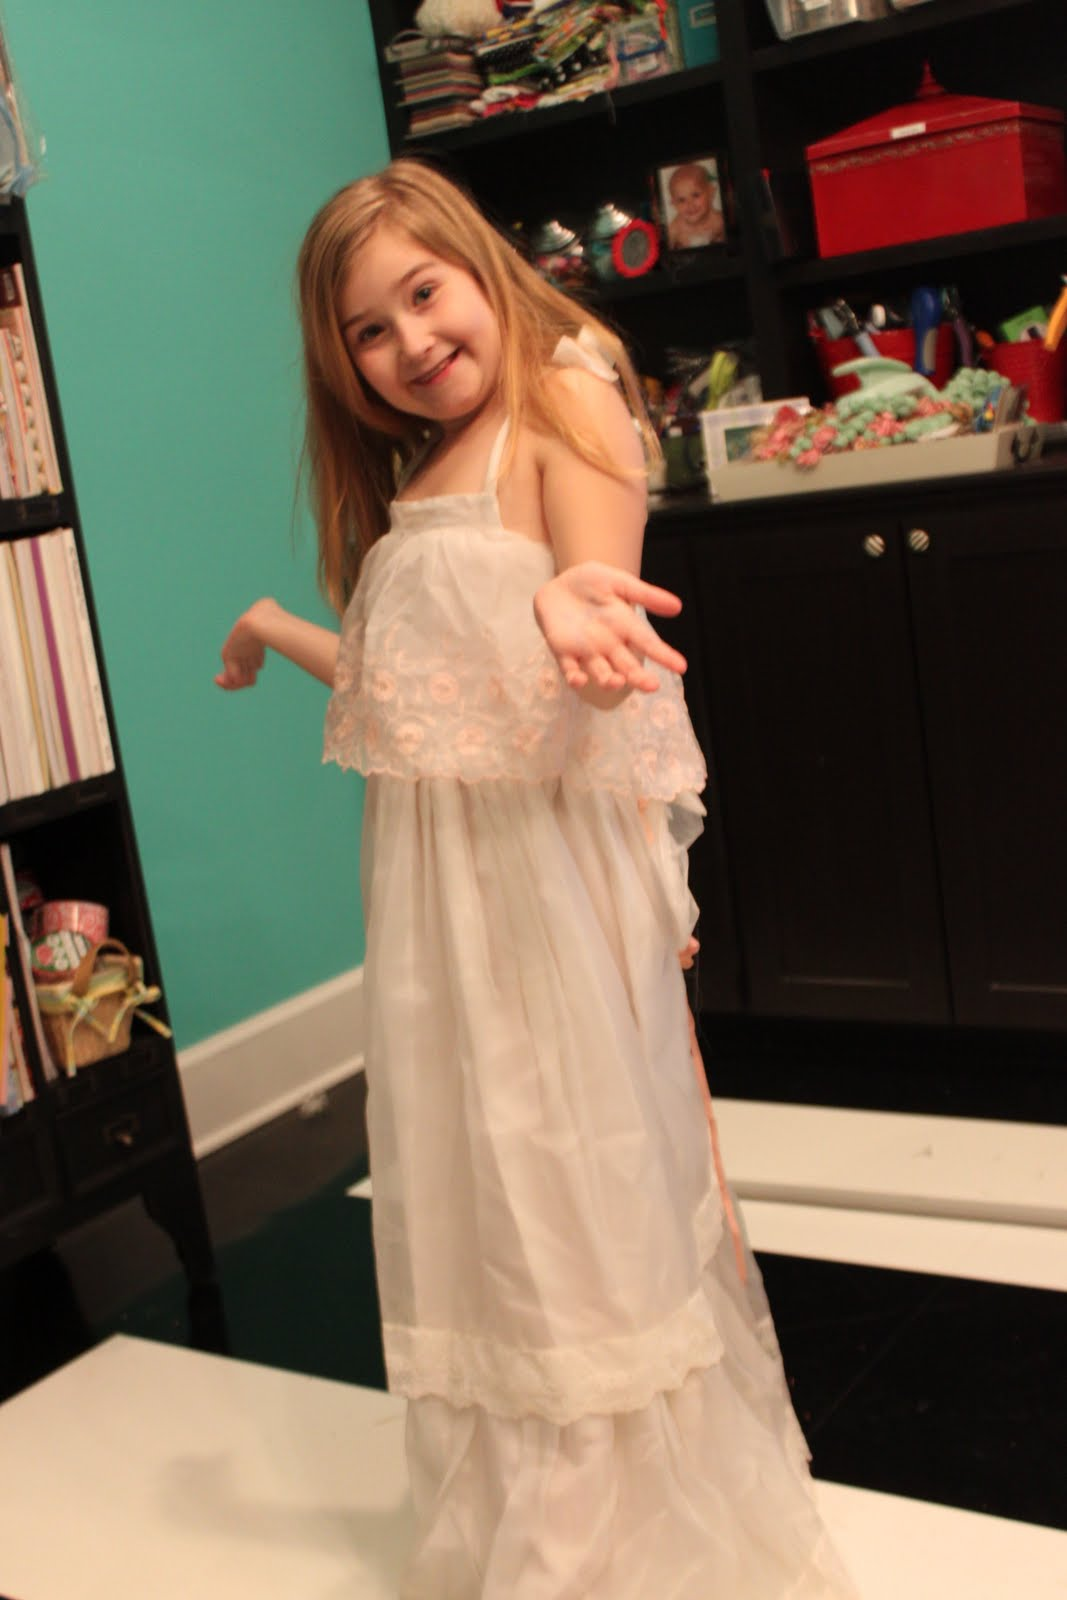 Mojoy: Playing dress up with the big girls!